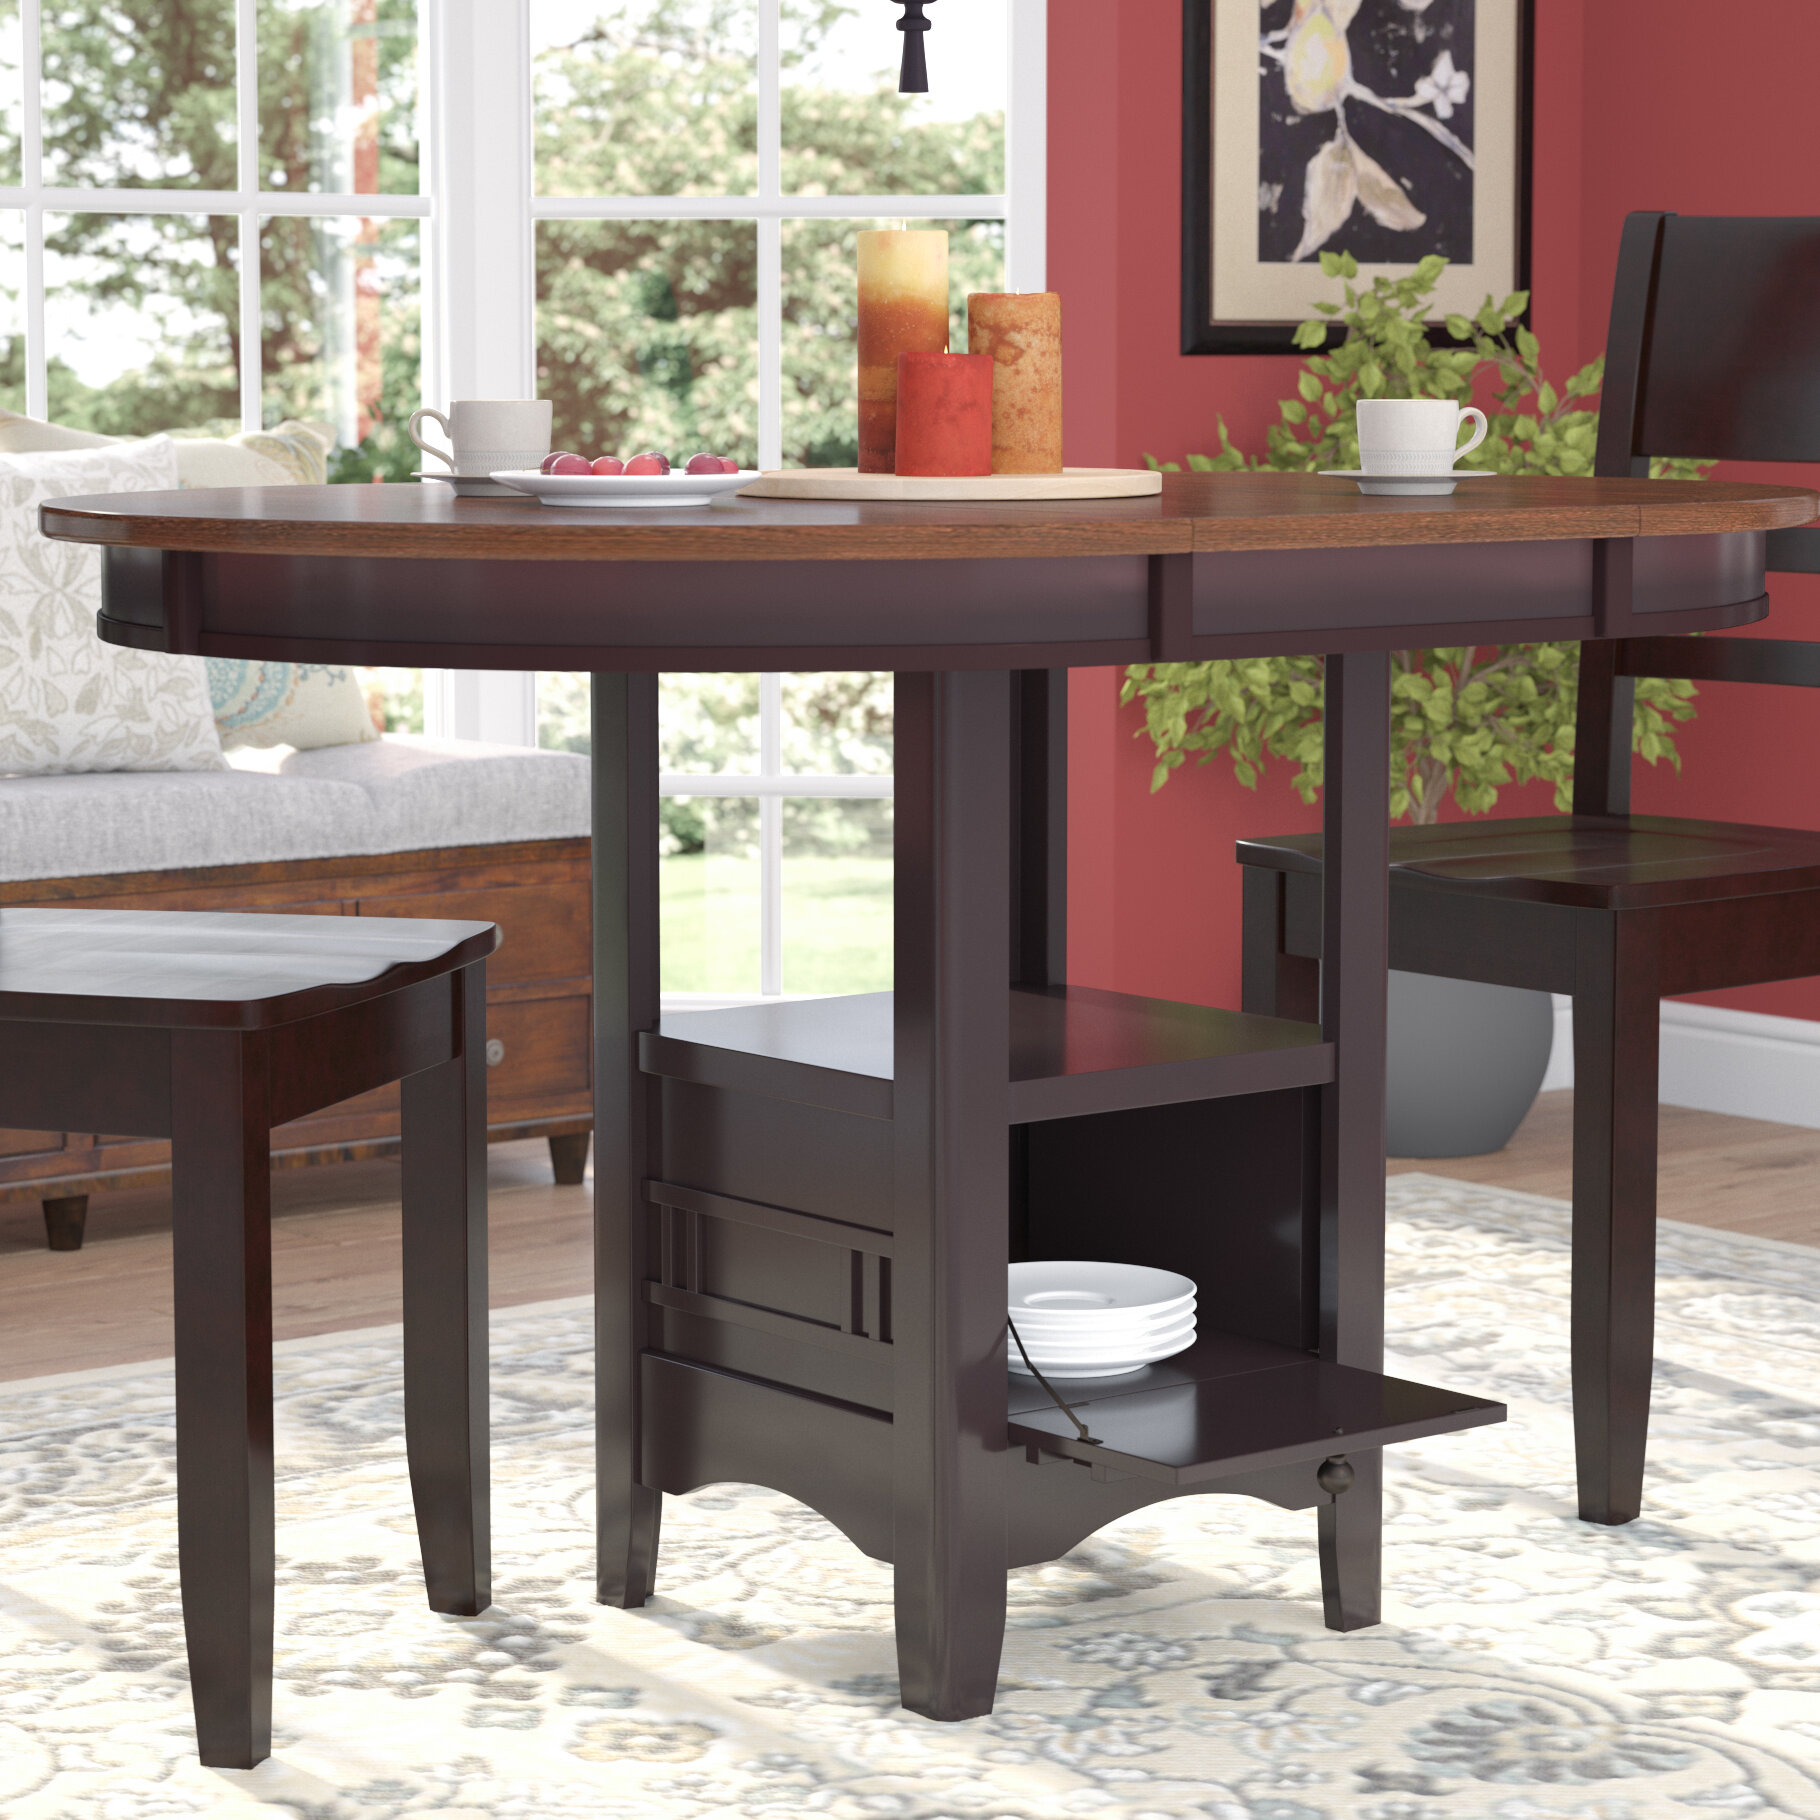 Magnificent Sinkler Counter Height Drop Leaf Dining Table Gmtry Best Dining Table And Chair Ideas Images Gmtryco